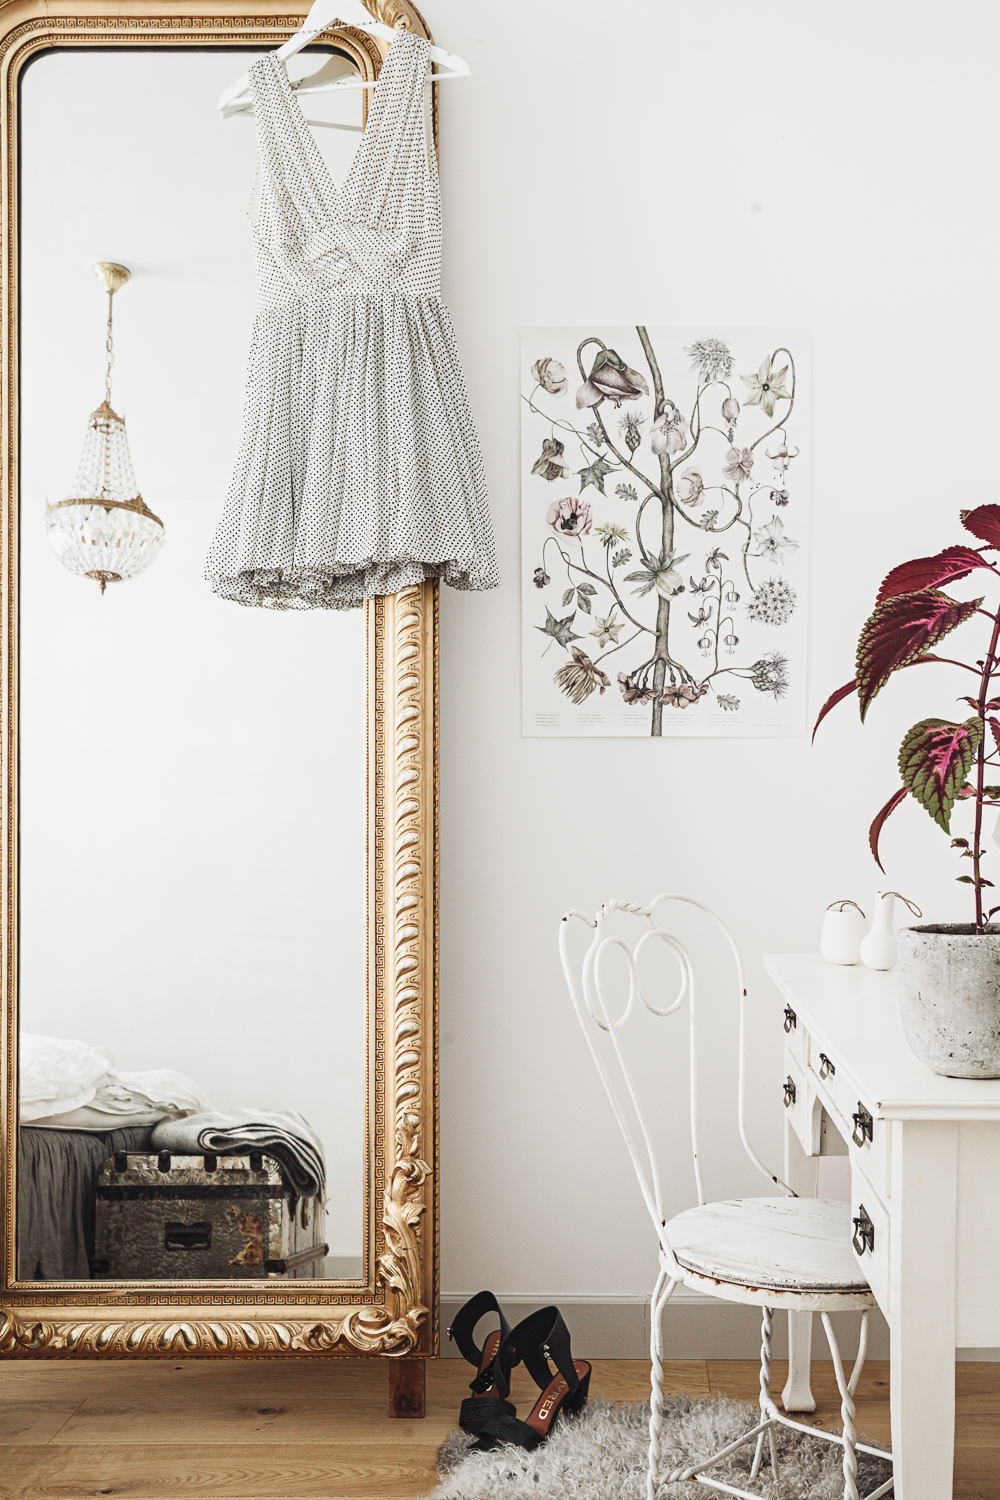 at-home-whatdecoratesmyday-foto-emily-dahl-29